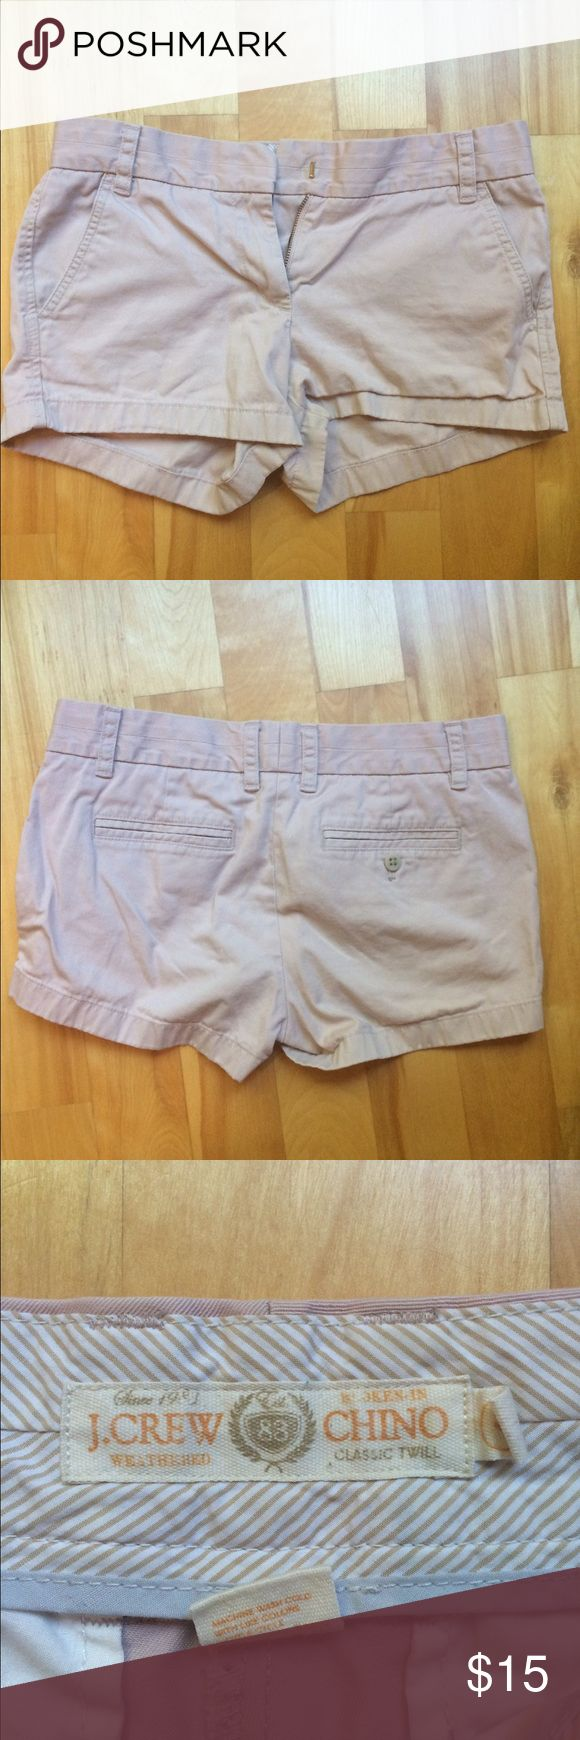 "J.Crew 3"" Chino Shorts Light pink shorts; good condition. J. Crew Shorts Jean Shorts"